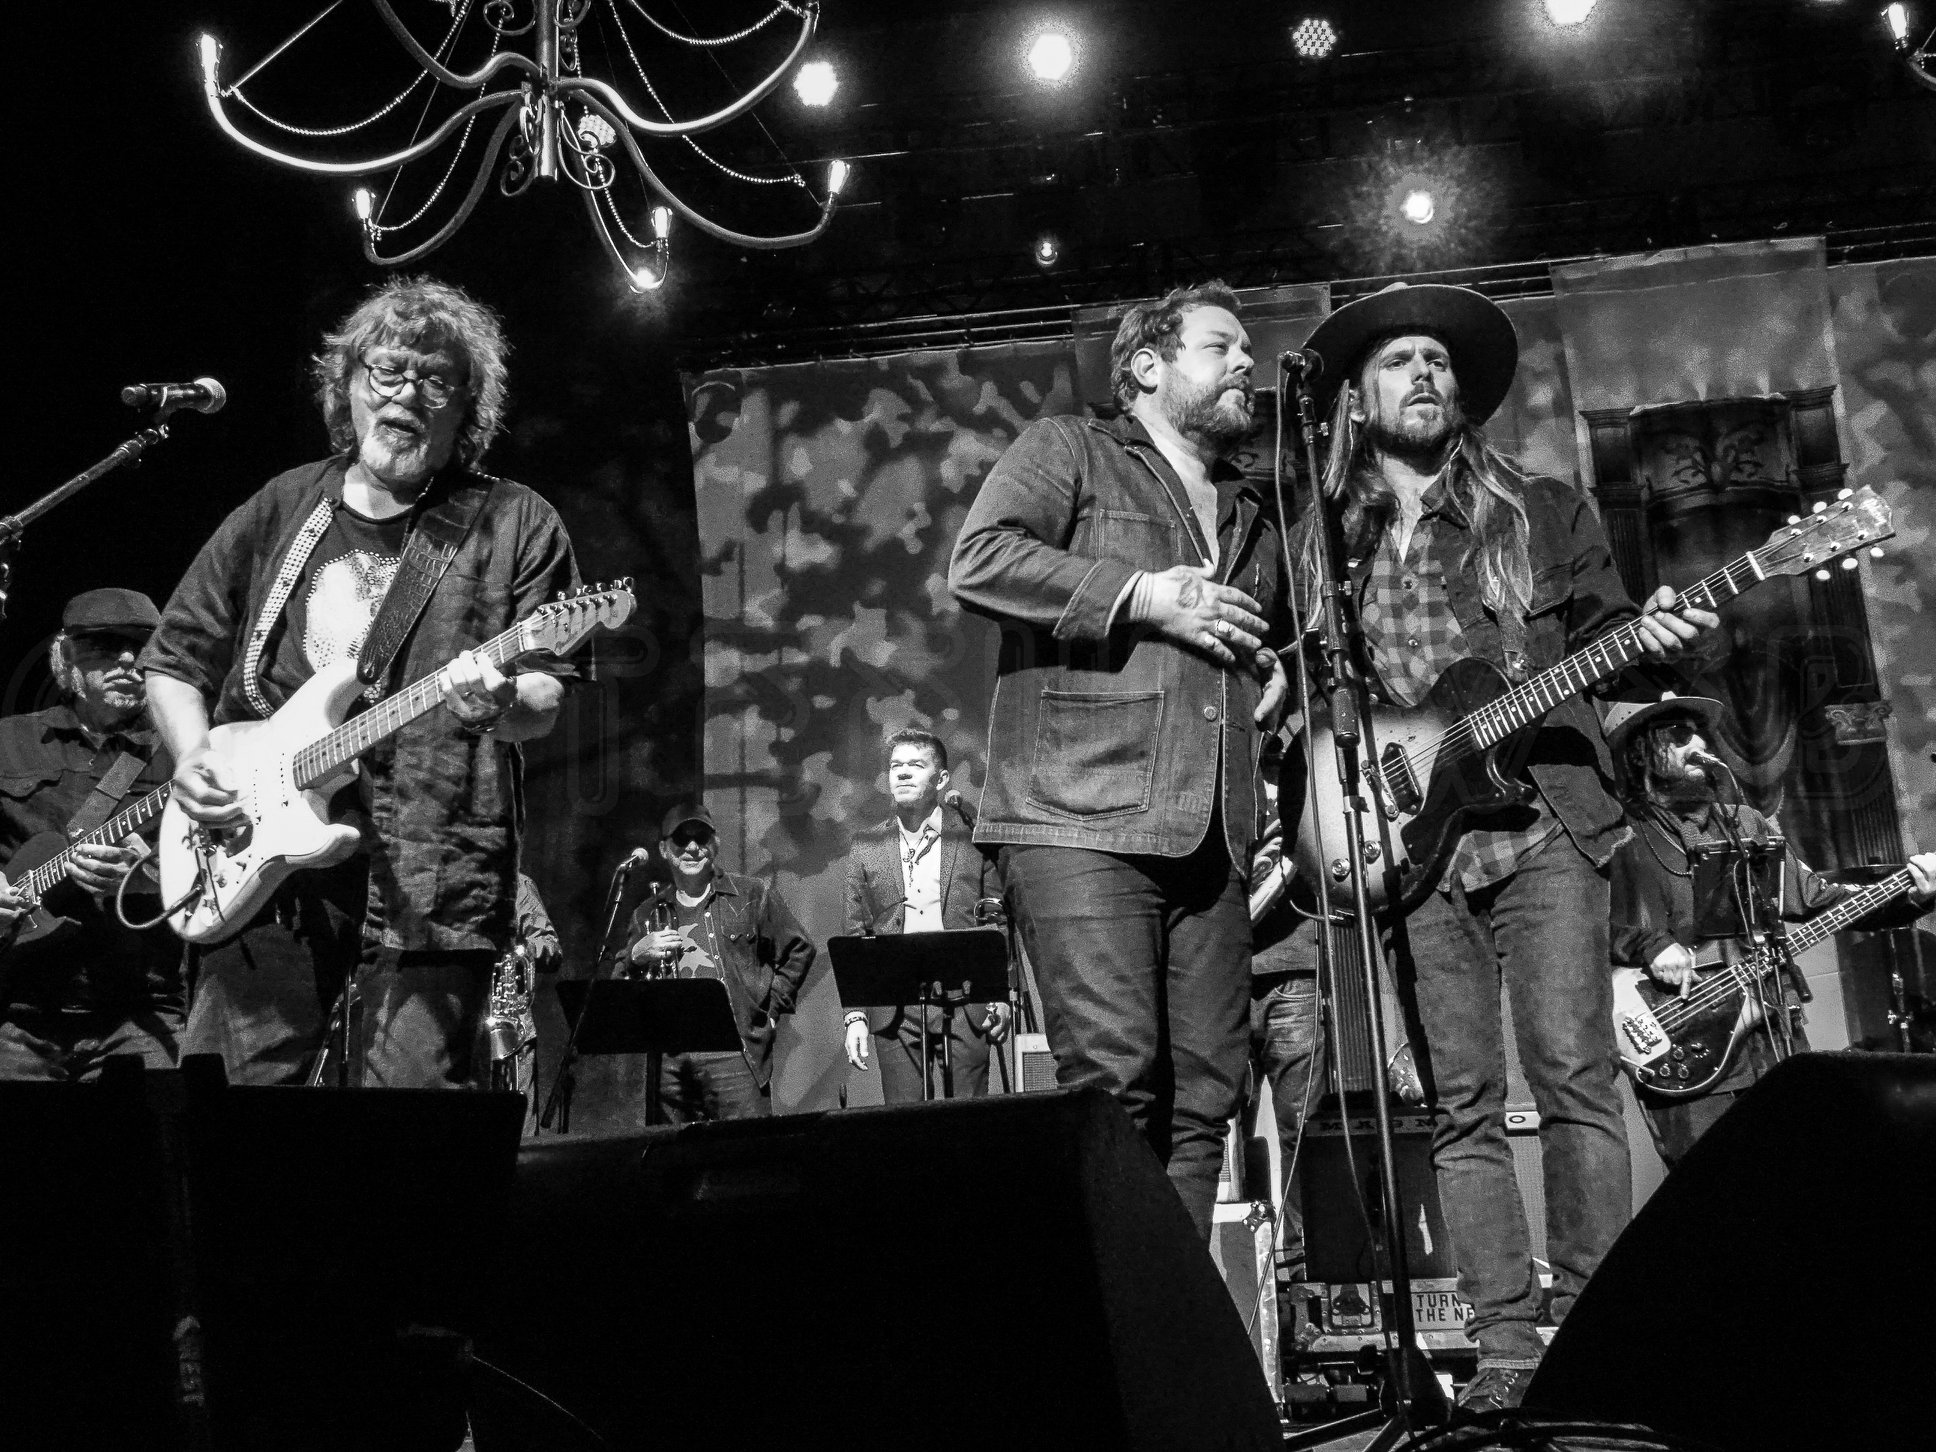 Dave Malone, Nathaniel Rateliff, and Lukas Nelson